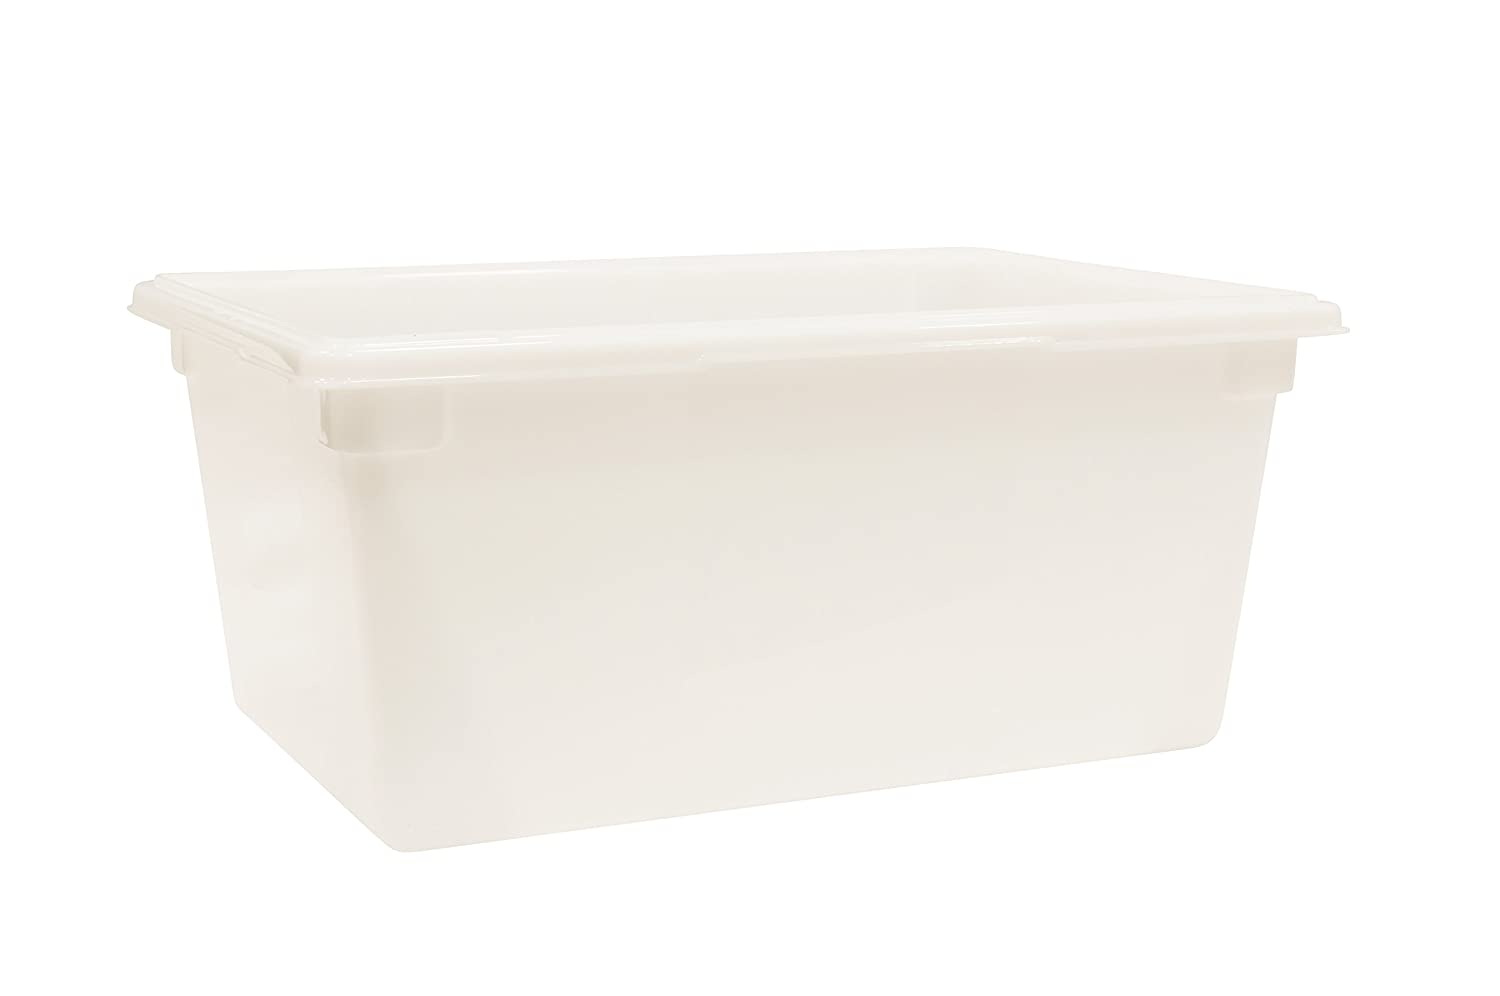 Rubbermaid Commercial Products Food Storage Box/Tote for Restaurant/Kitchen/Cafeteria, 16.5 Gallon, White (FG352800WHT)